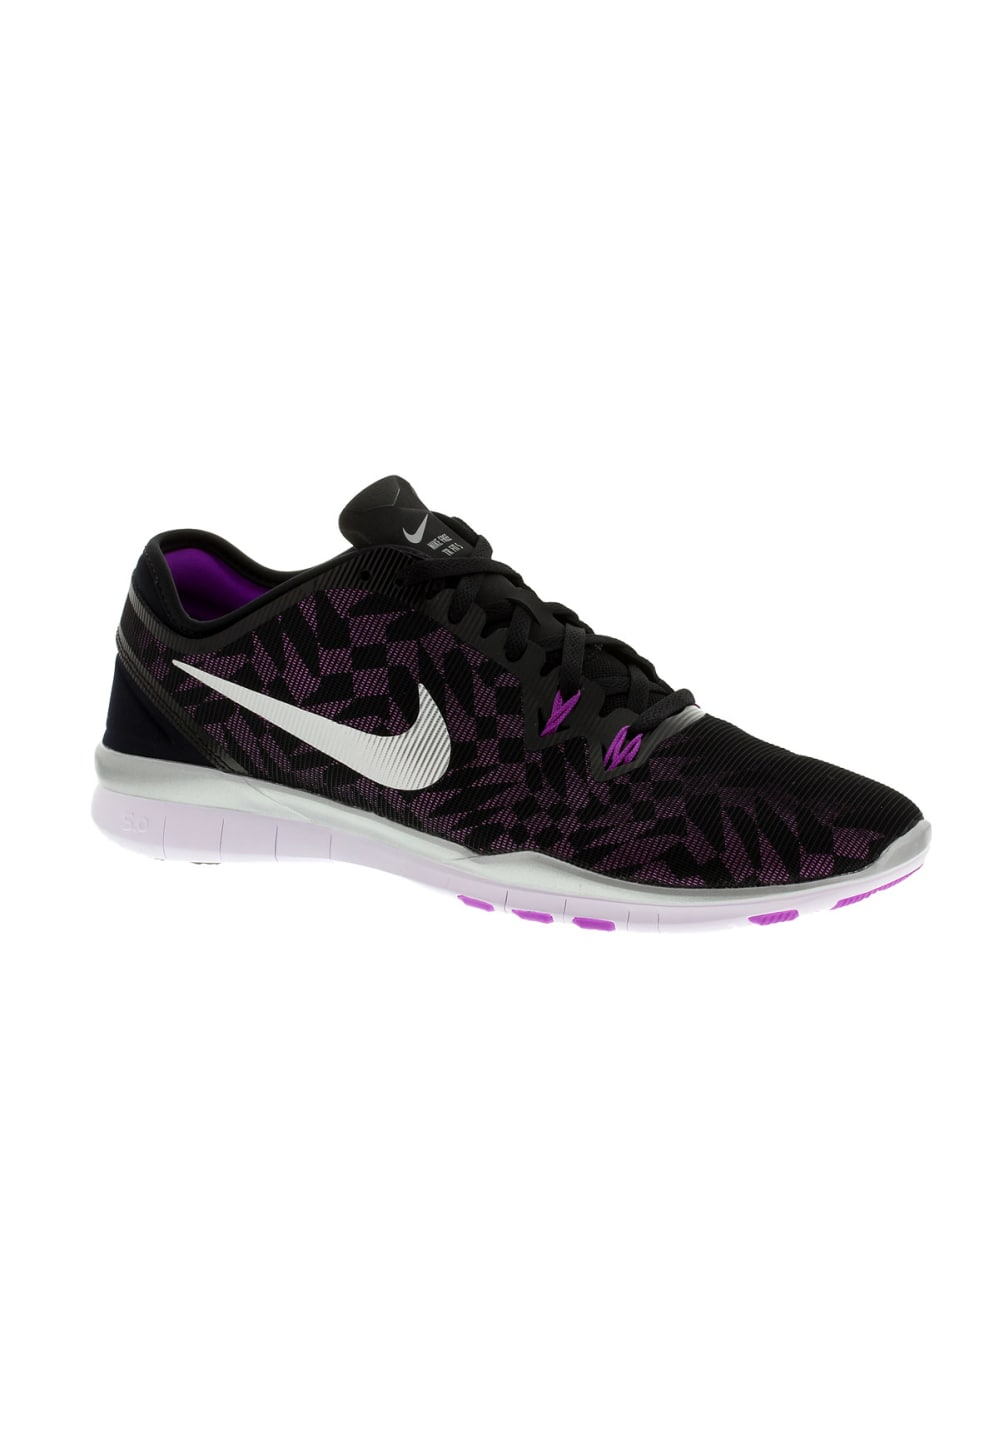 0 Nike Femme Fit Running 5 Tr 5 Metallic Free Pour Chaussures kZPuwTlXiO